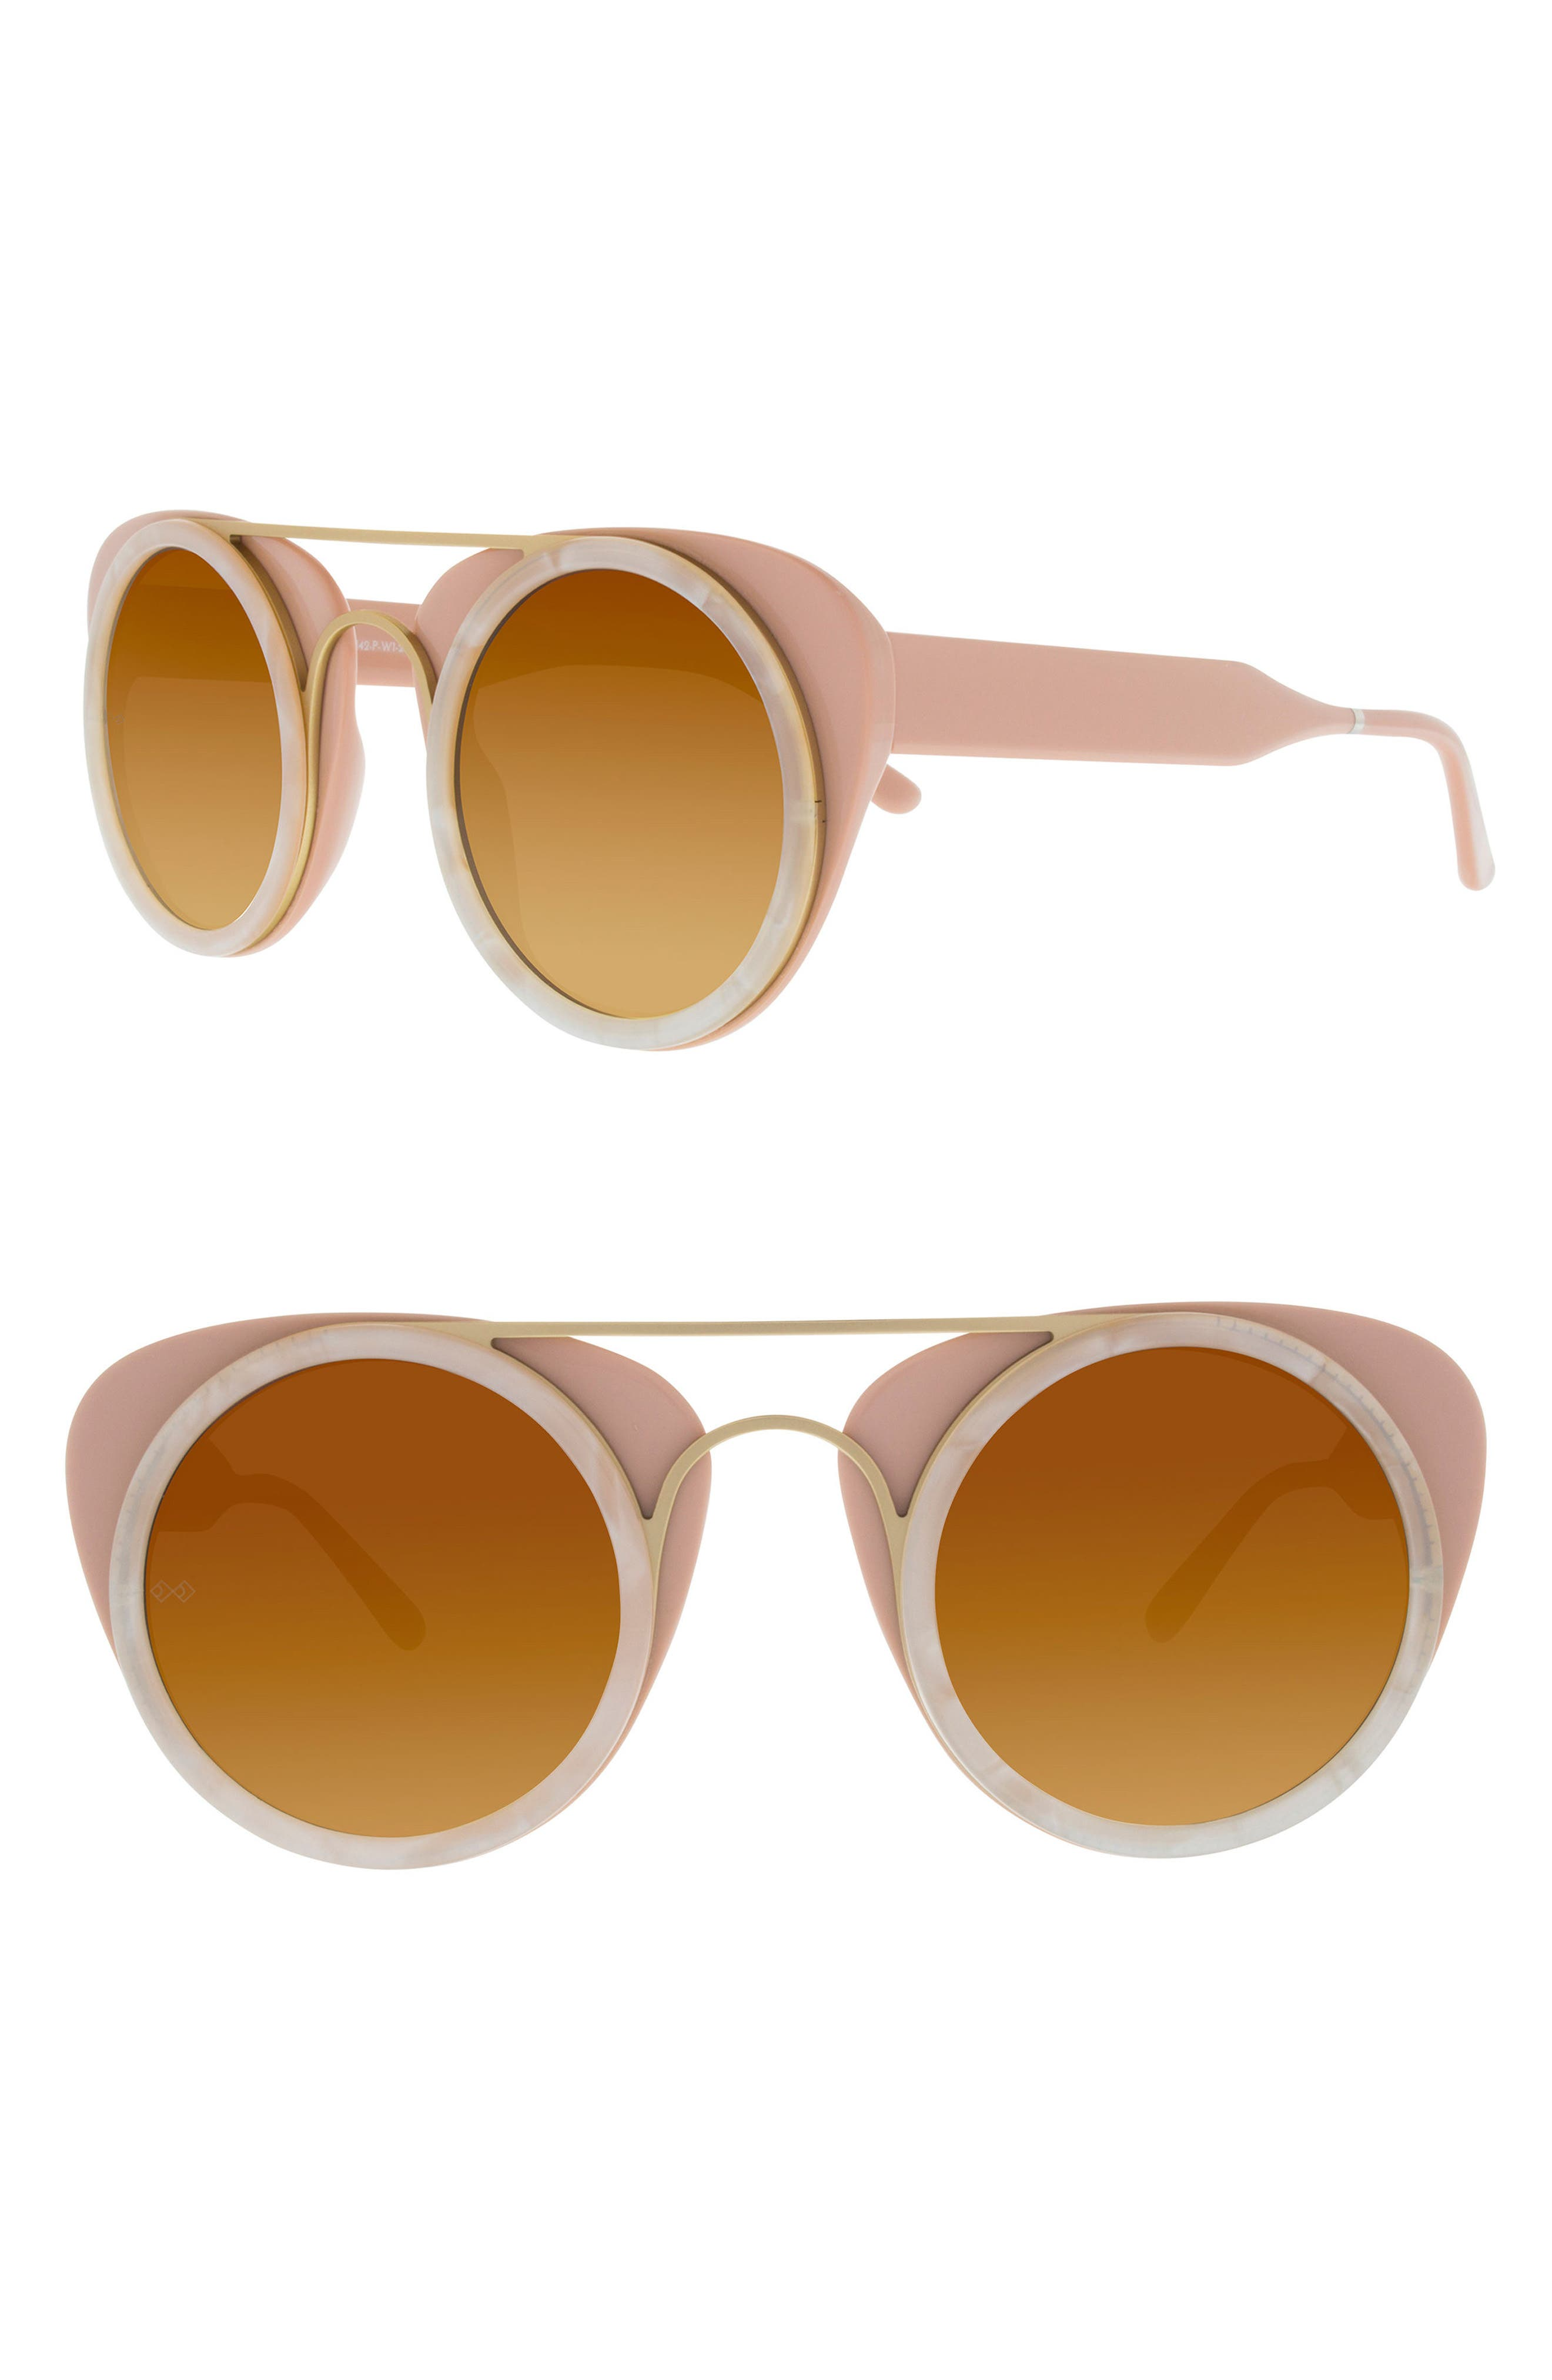 Soda Pop 3 47mm Round Sunglasses,                         Main,                         color, Pink/ White Scales/ Matte Gold